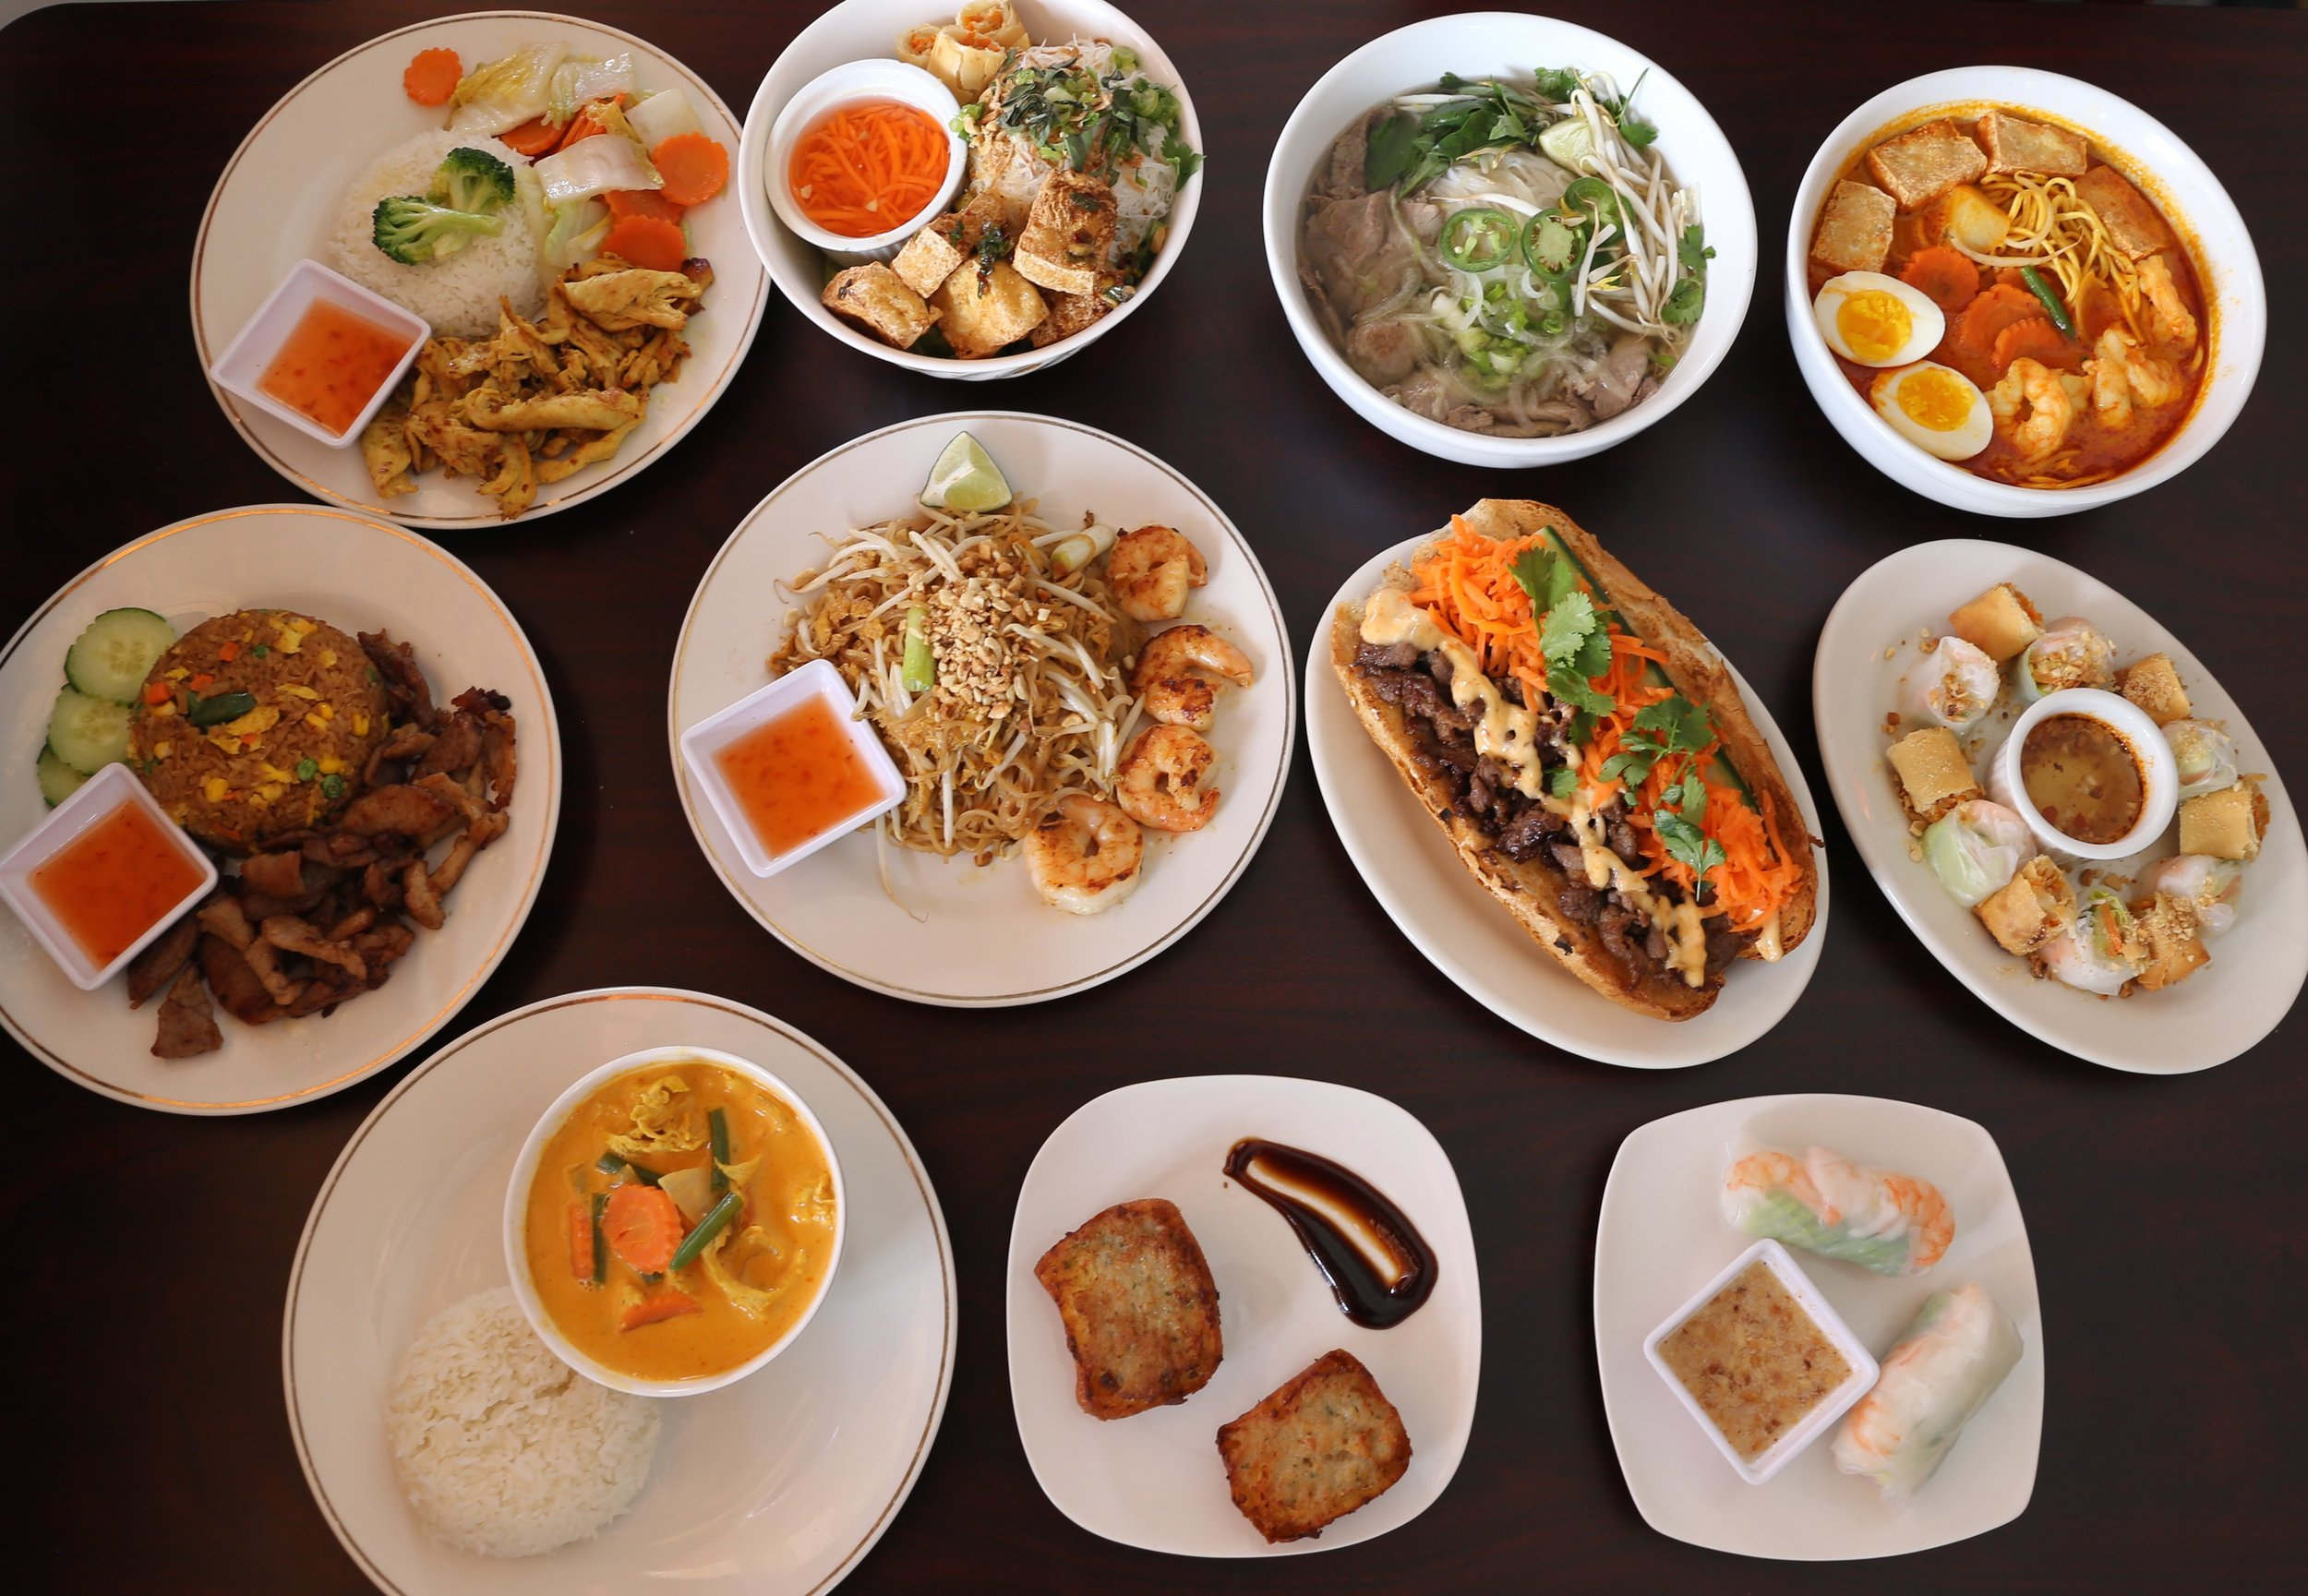 Flavors from Southeast Asia